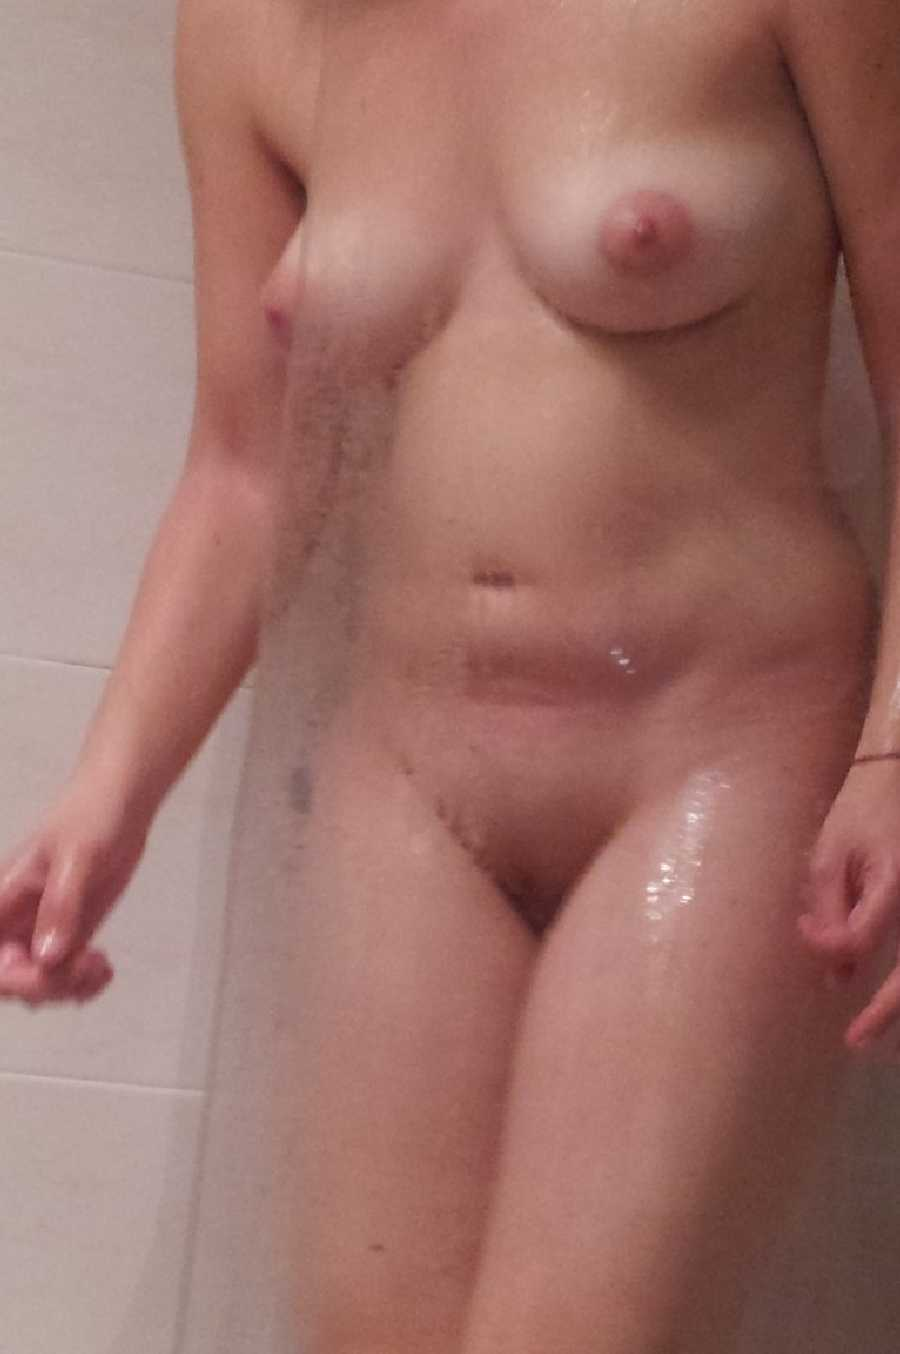 Pics in the Shower